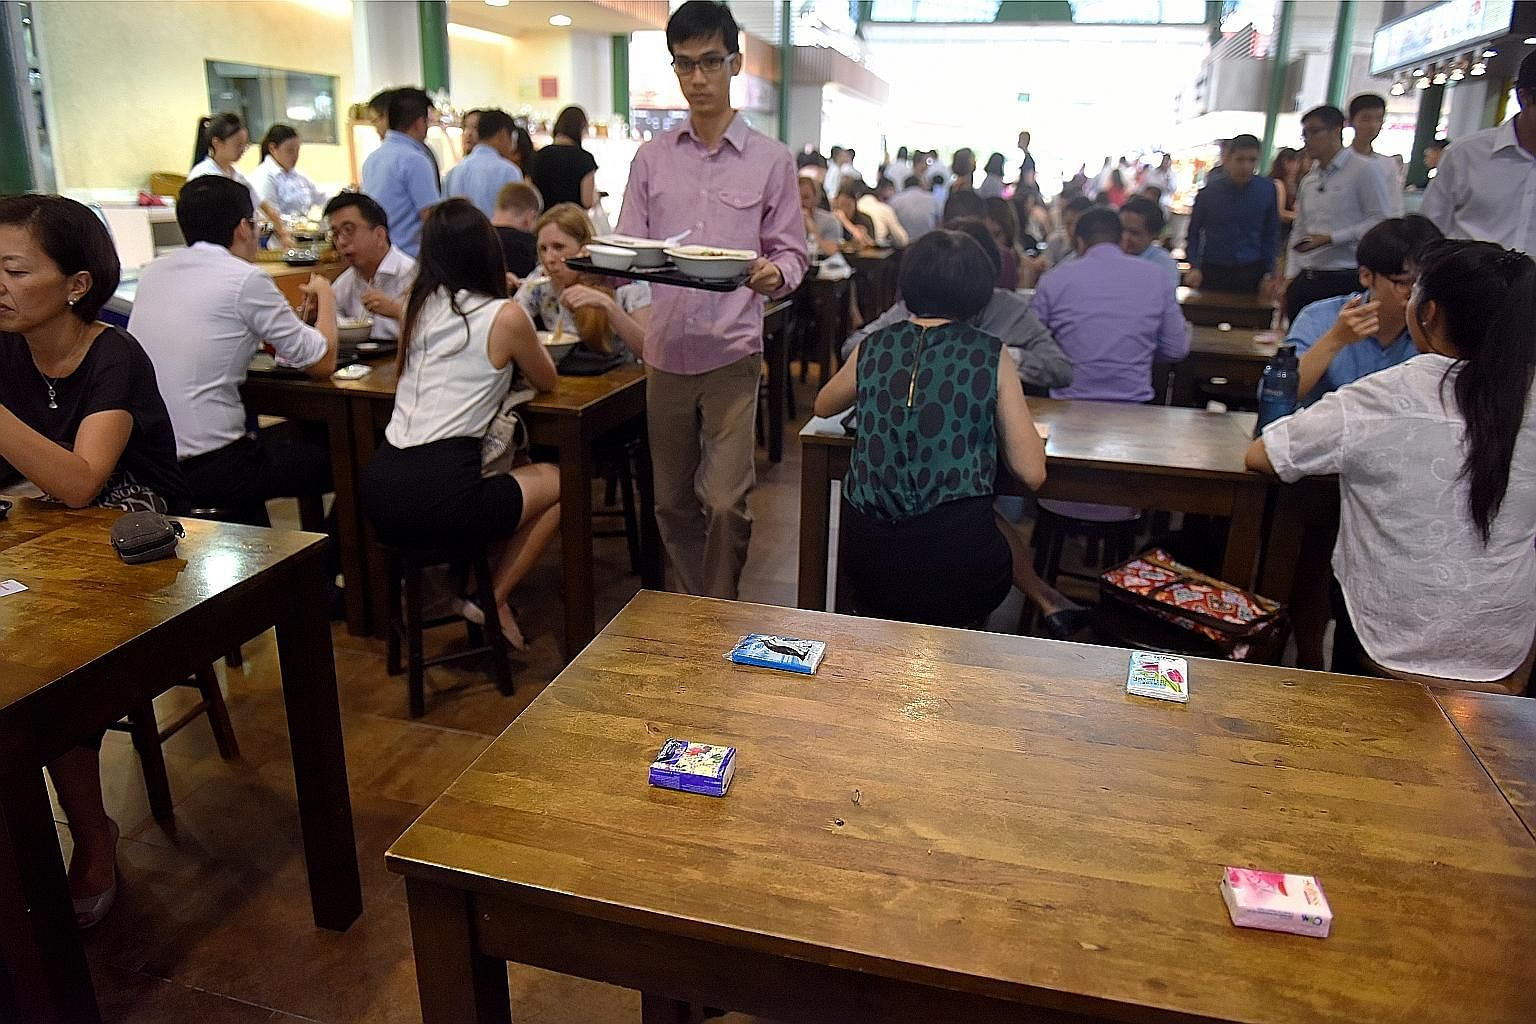 Although there are no restrictions on using items such as tissue paper to reserve seats in hawker centres, the National Environment Agency urged patrons to exercise consideration.